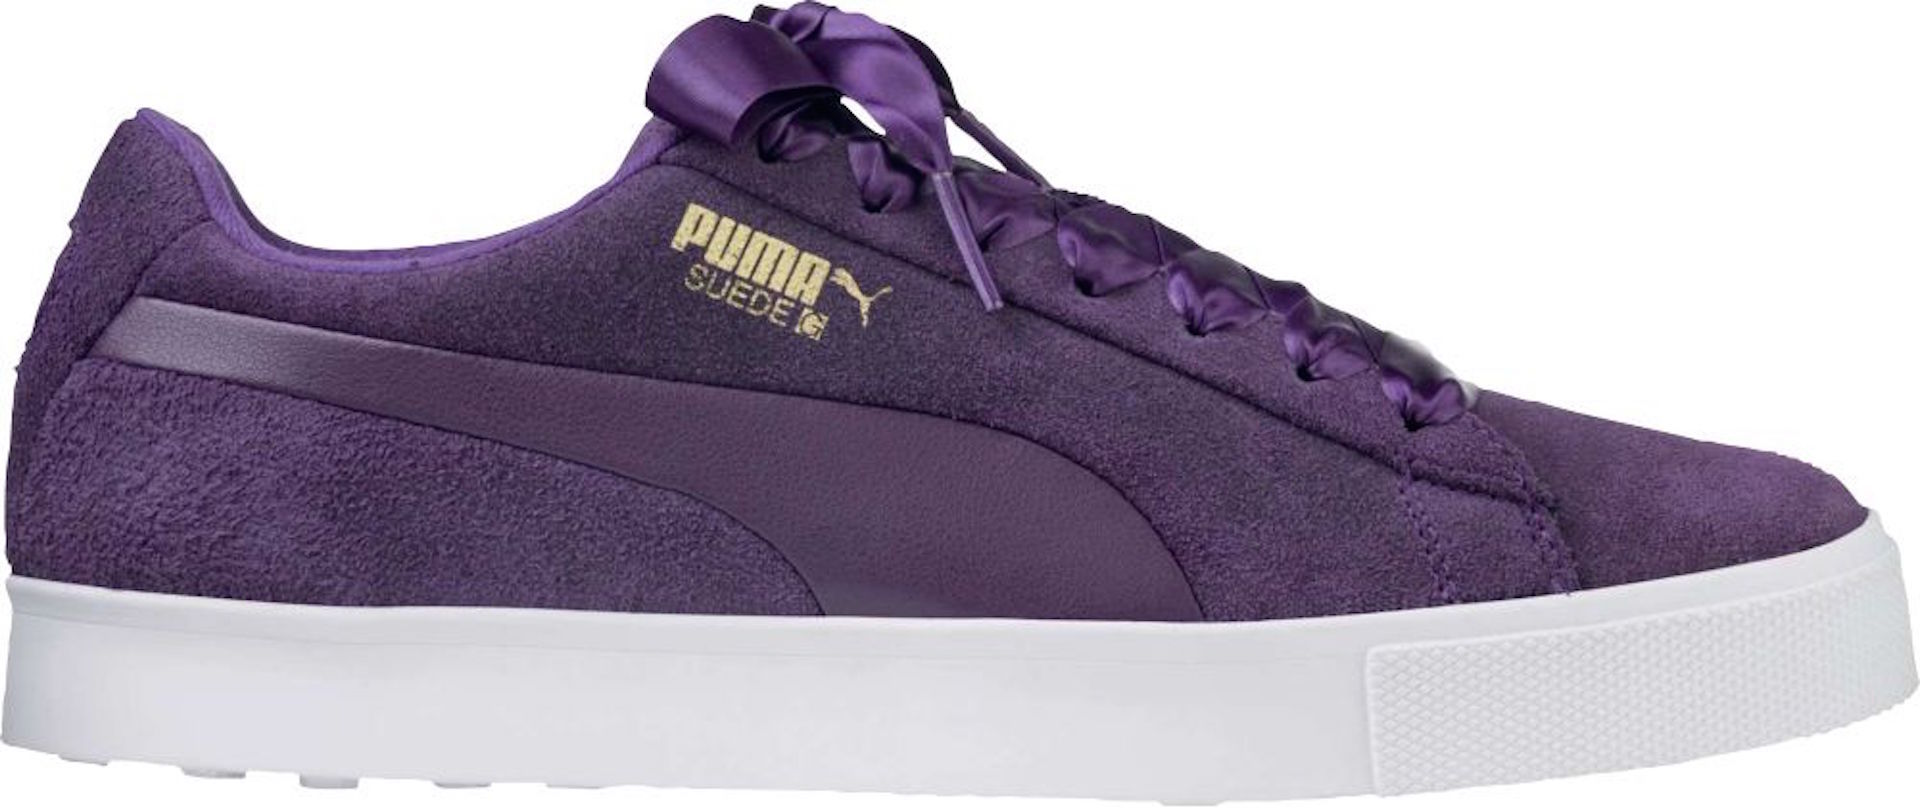 50th anniversary of Puma's iconic suede shoes